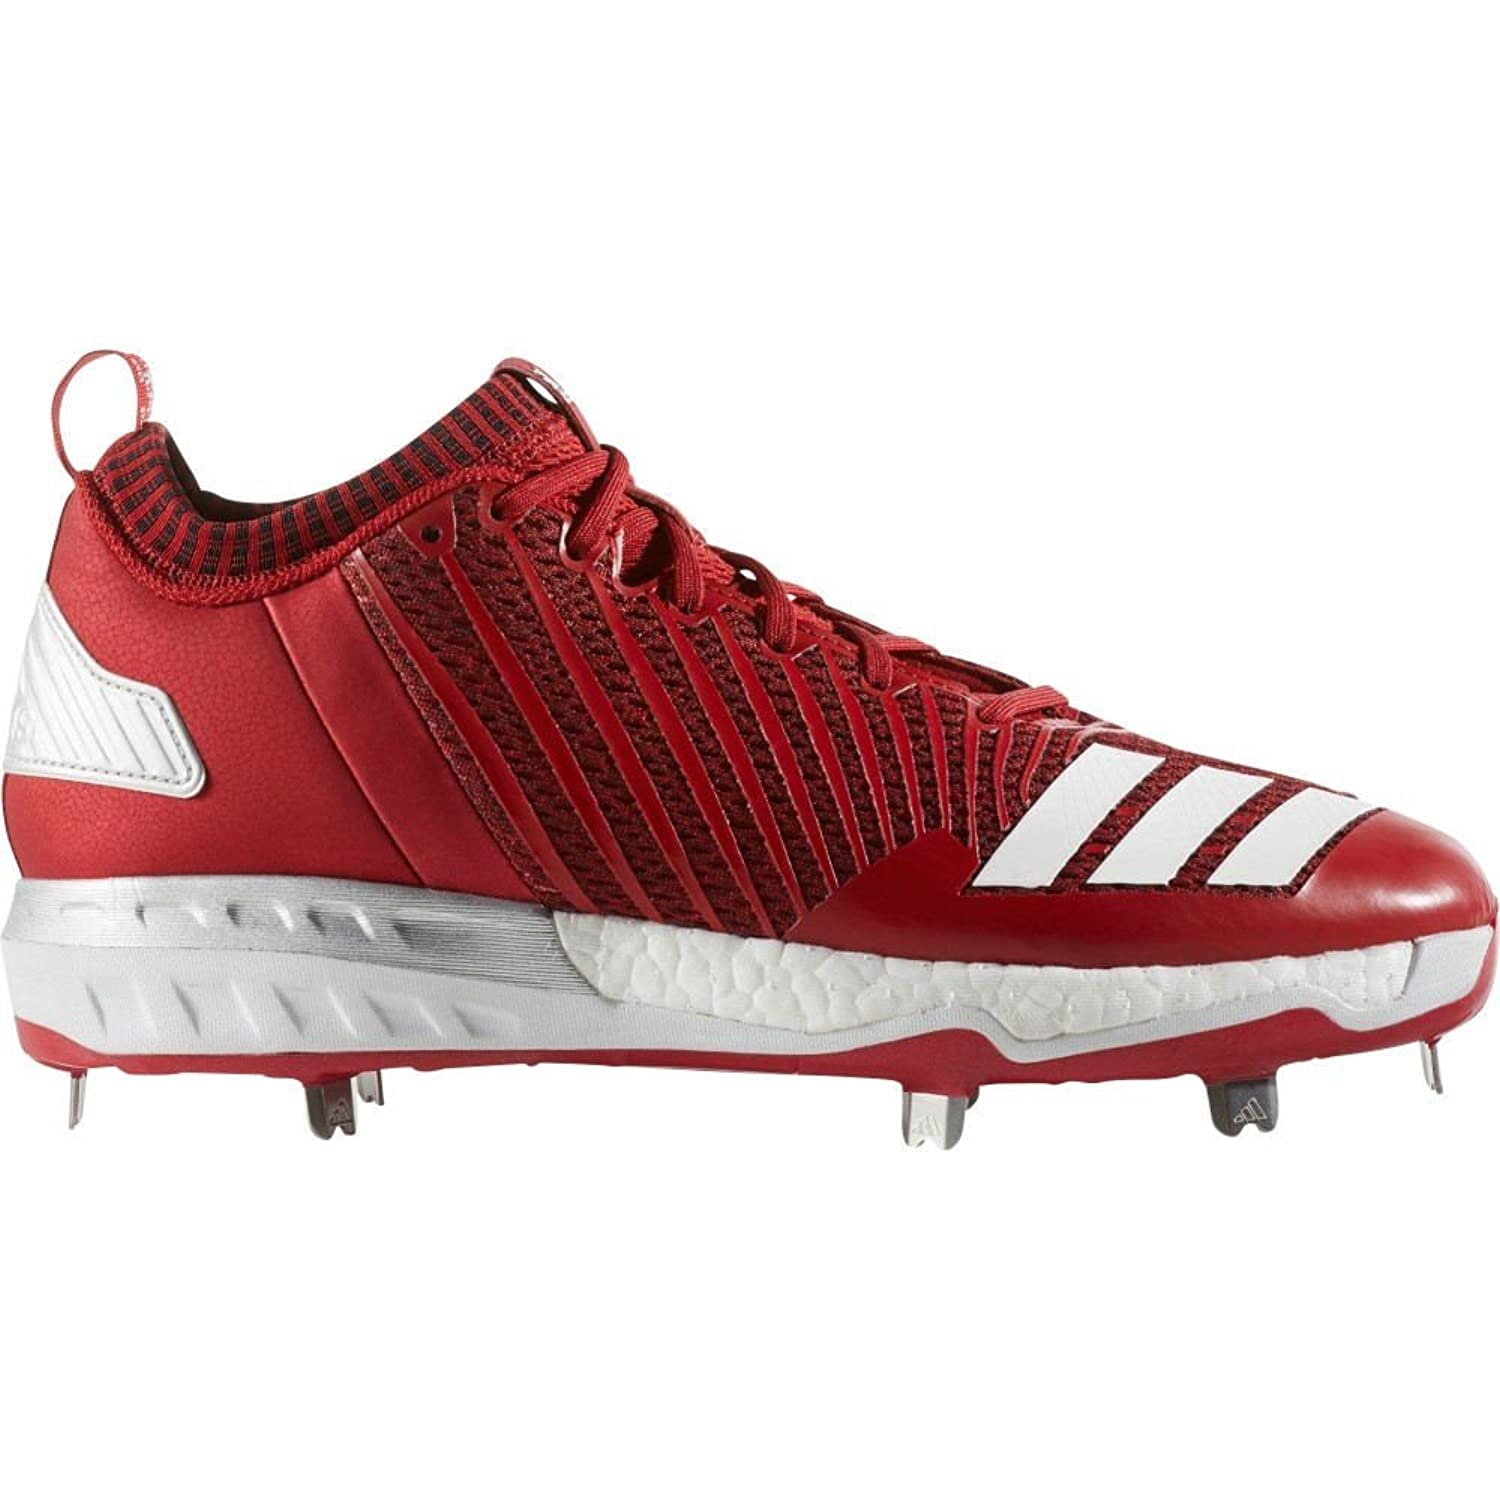 (アディダス) adidas メンズ 野球 シューズ靴 adidas Boost Icon 3 Metal Baseball Cleats [並行輸入品] B077XVKD7F 8.5-Medium